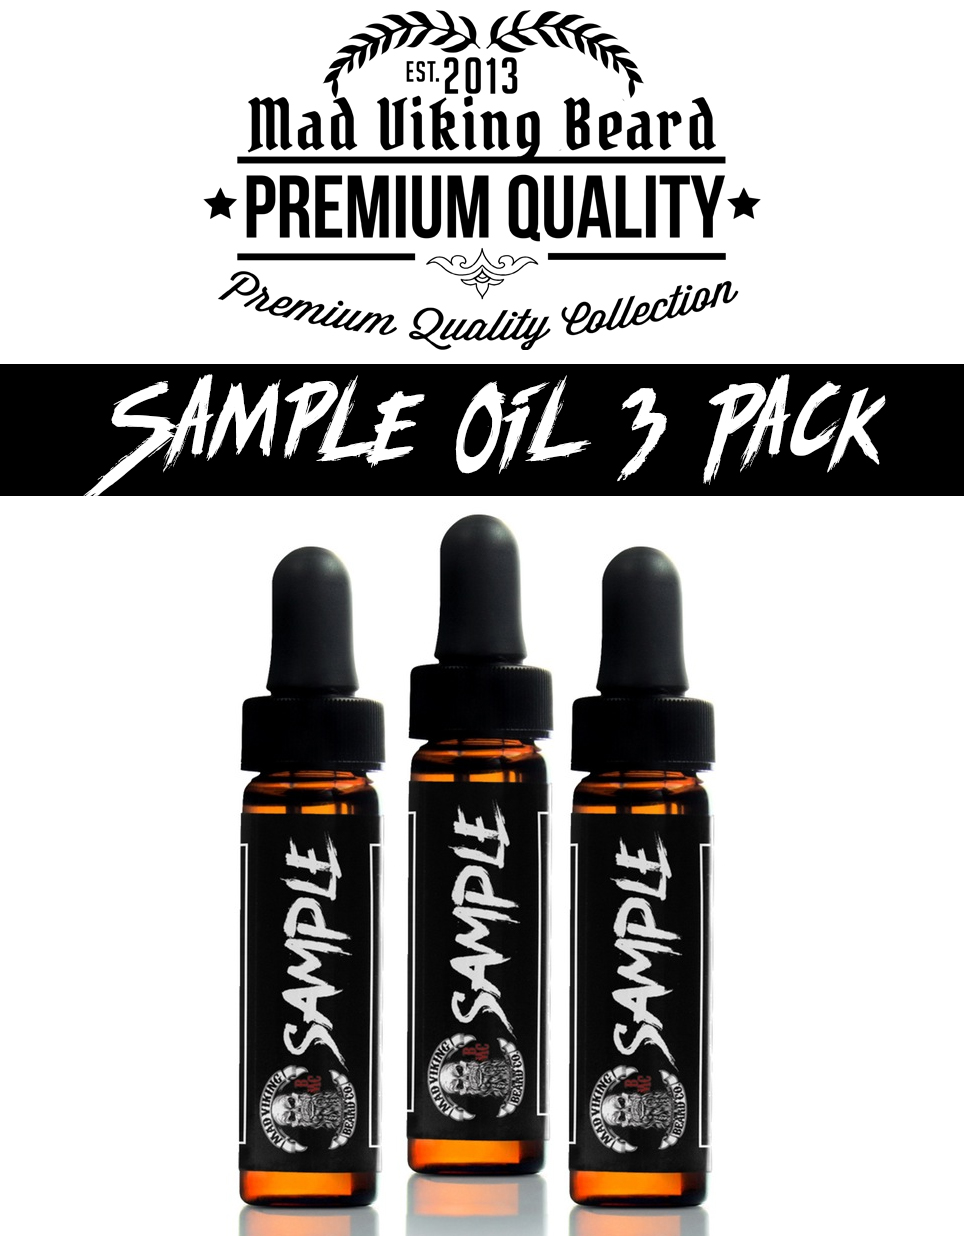 Mad Viking 3 Pack Sample Oils